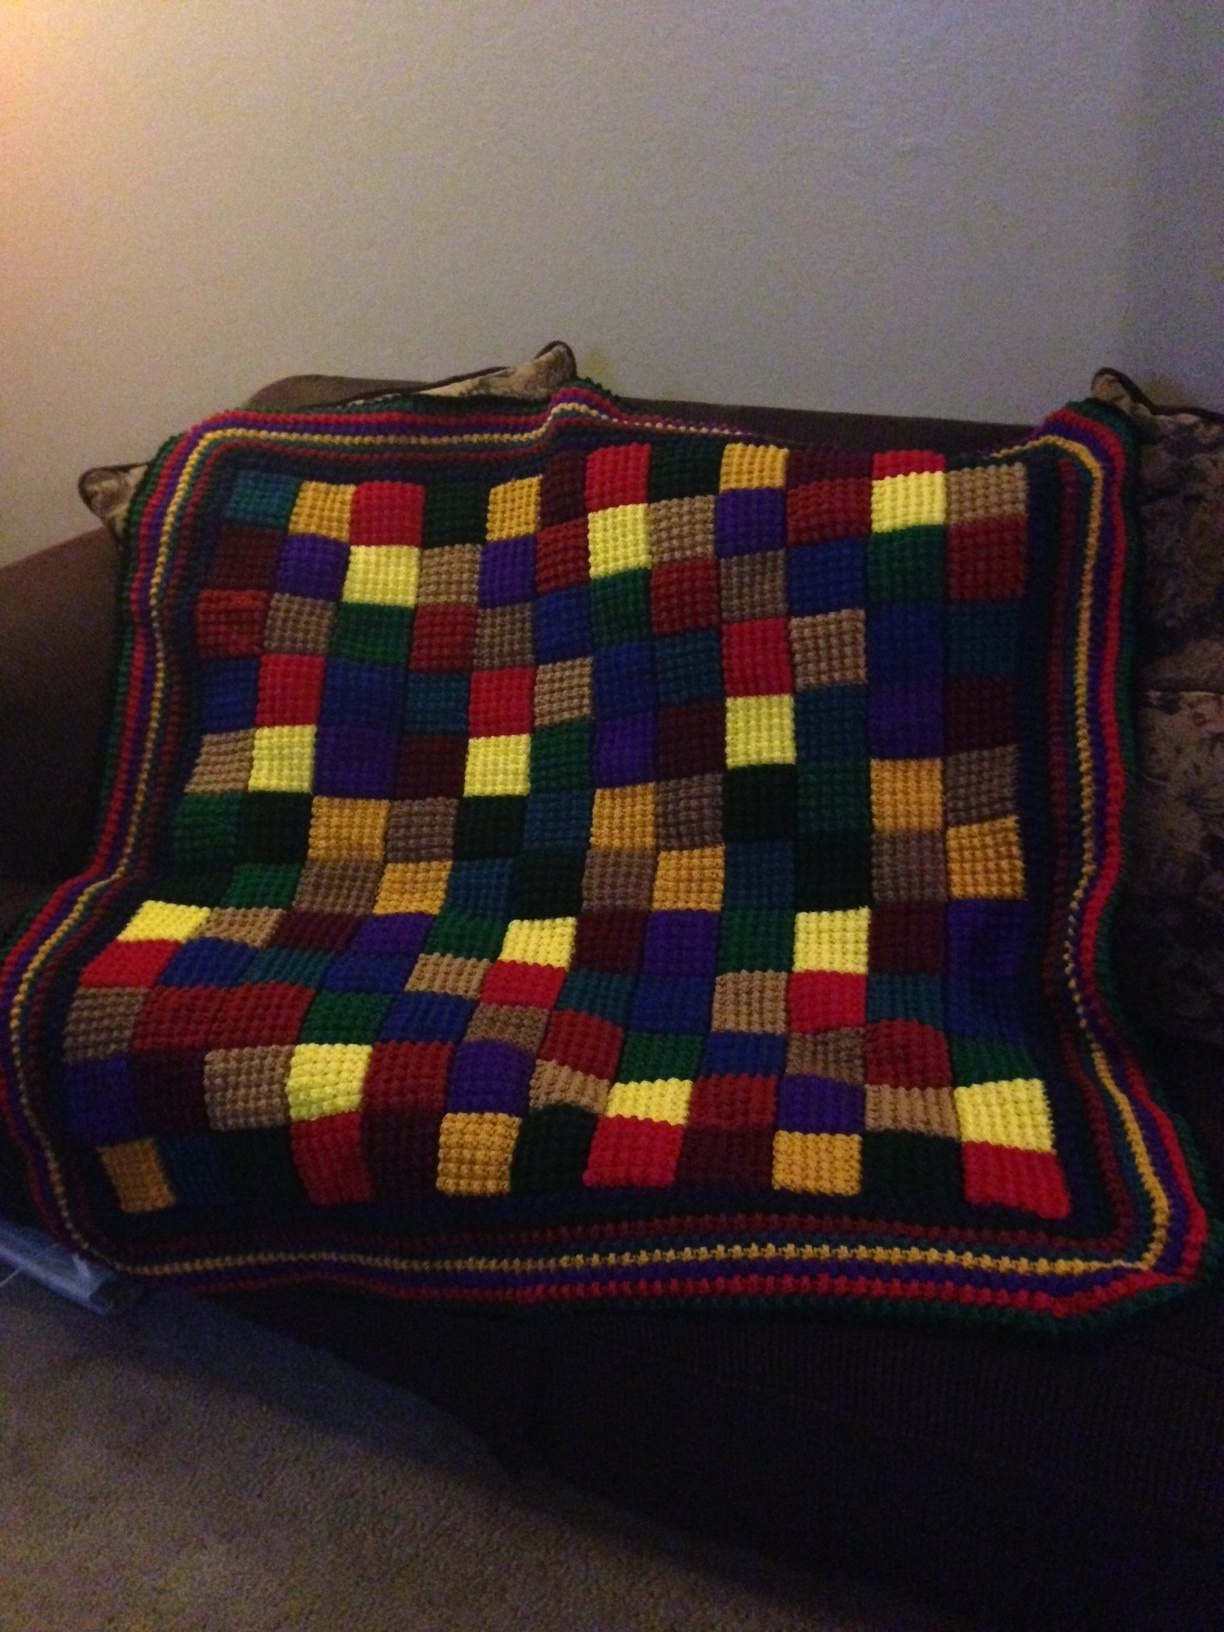 Large Multiple Color Crocheted Blanket